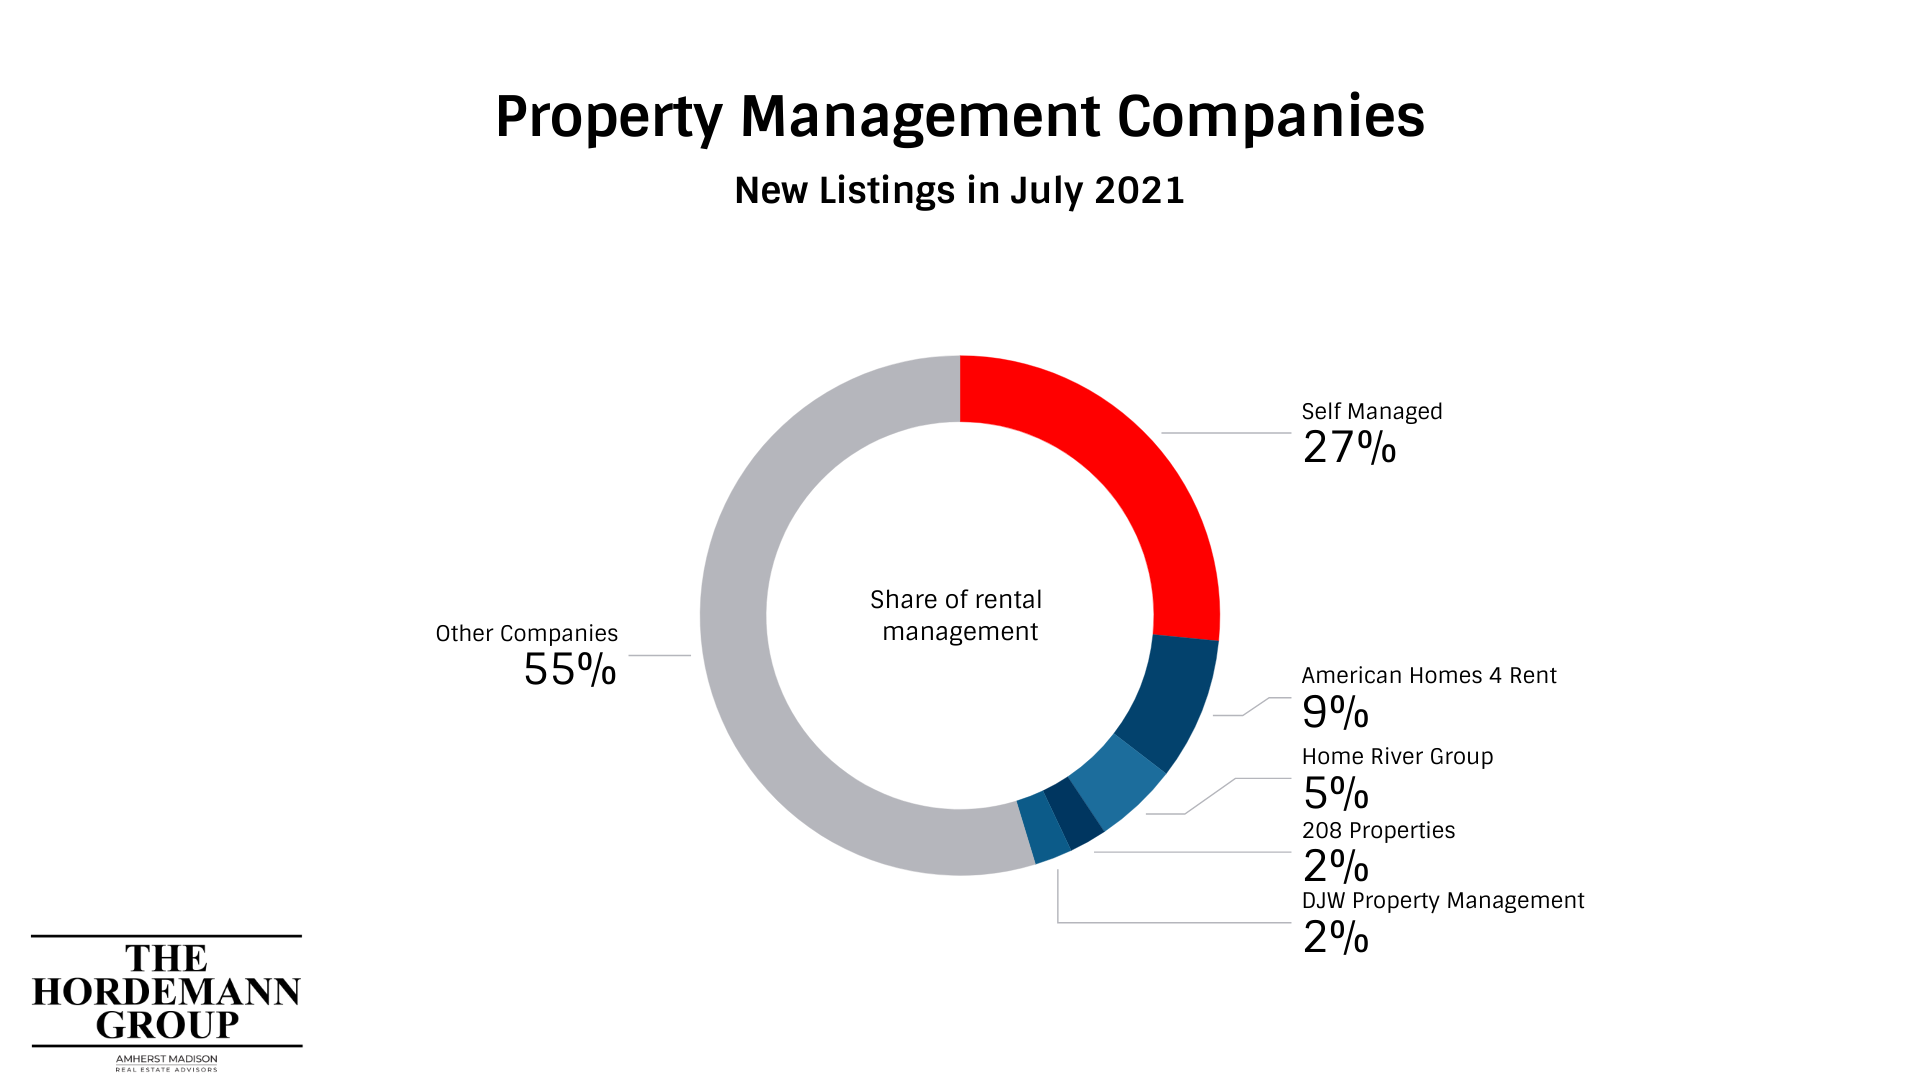 A pie chart of the top property management companies in southern Idaho